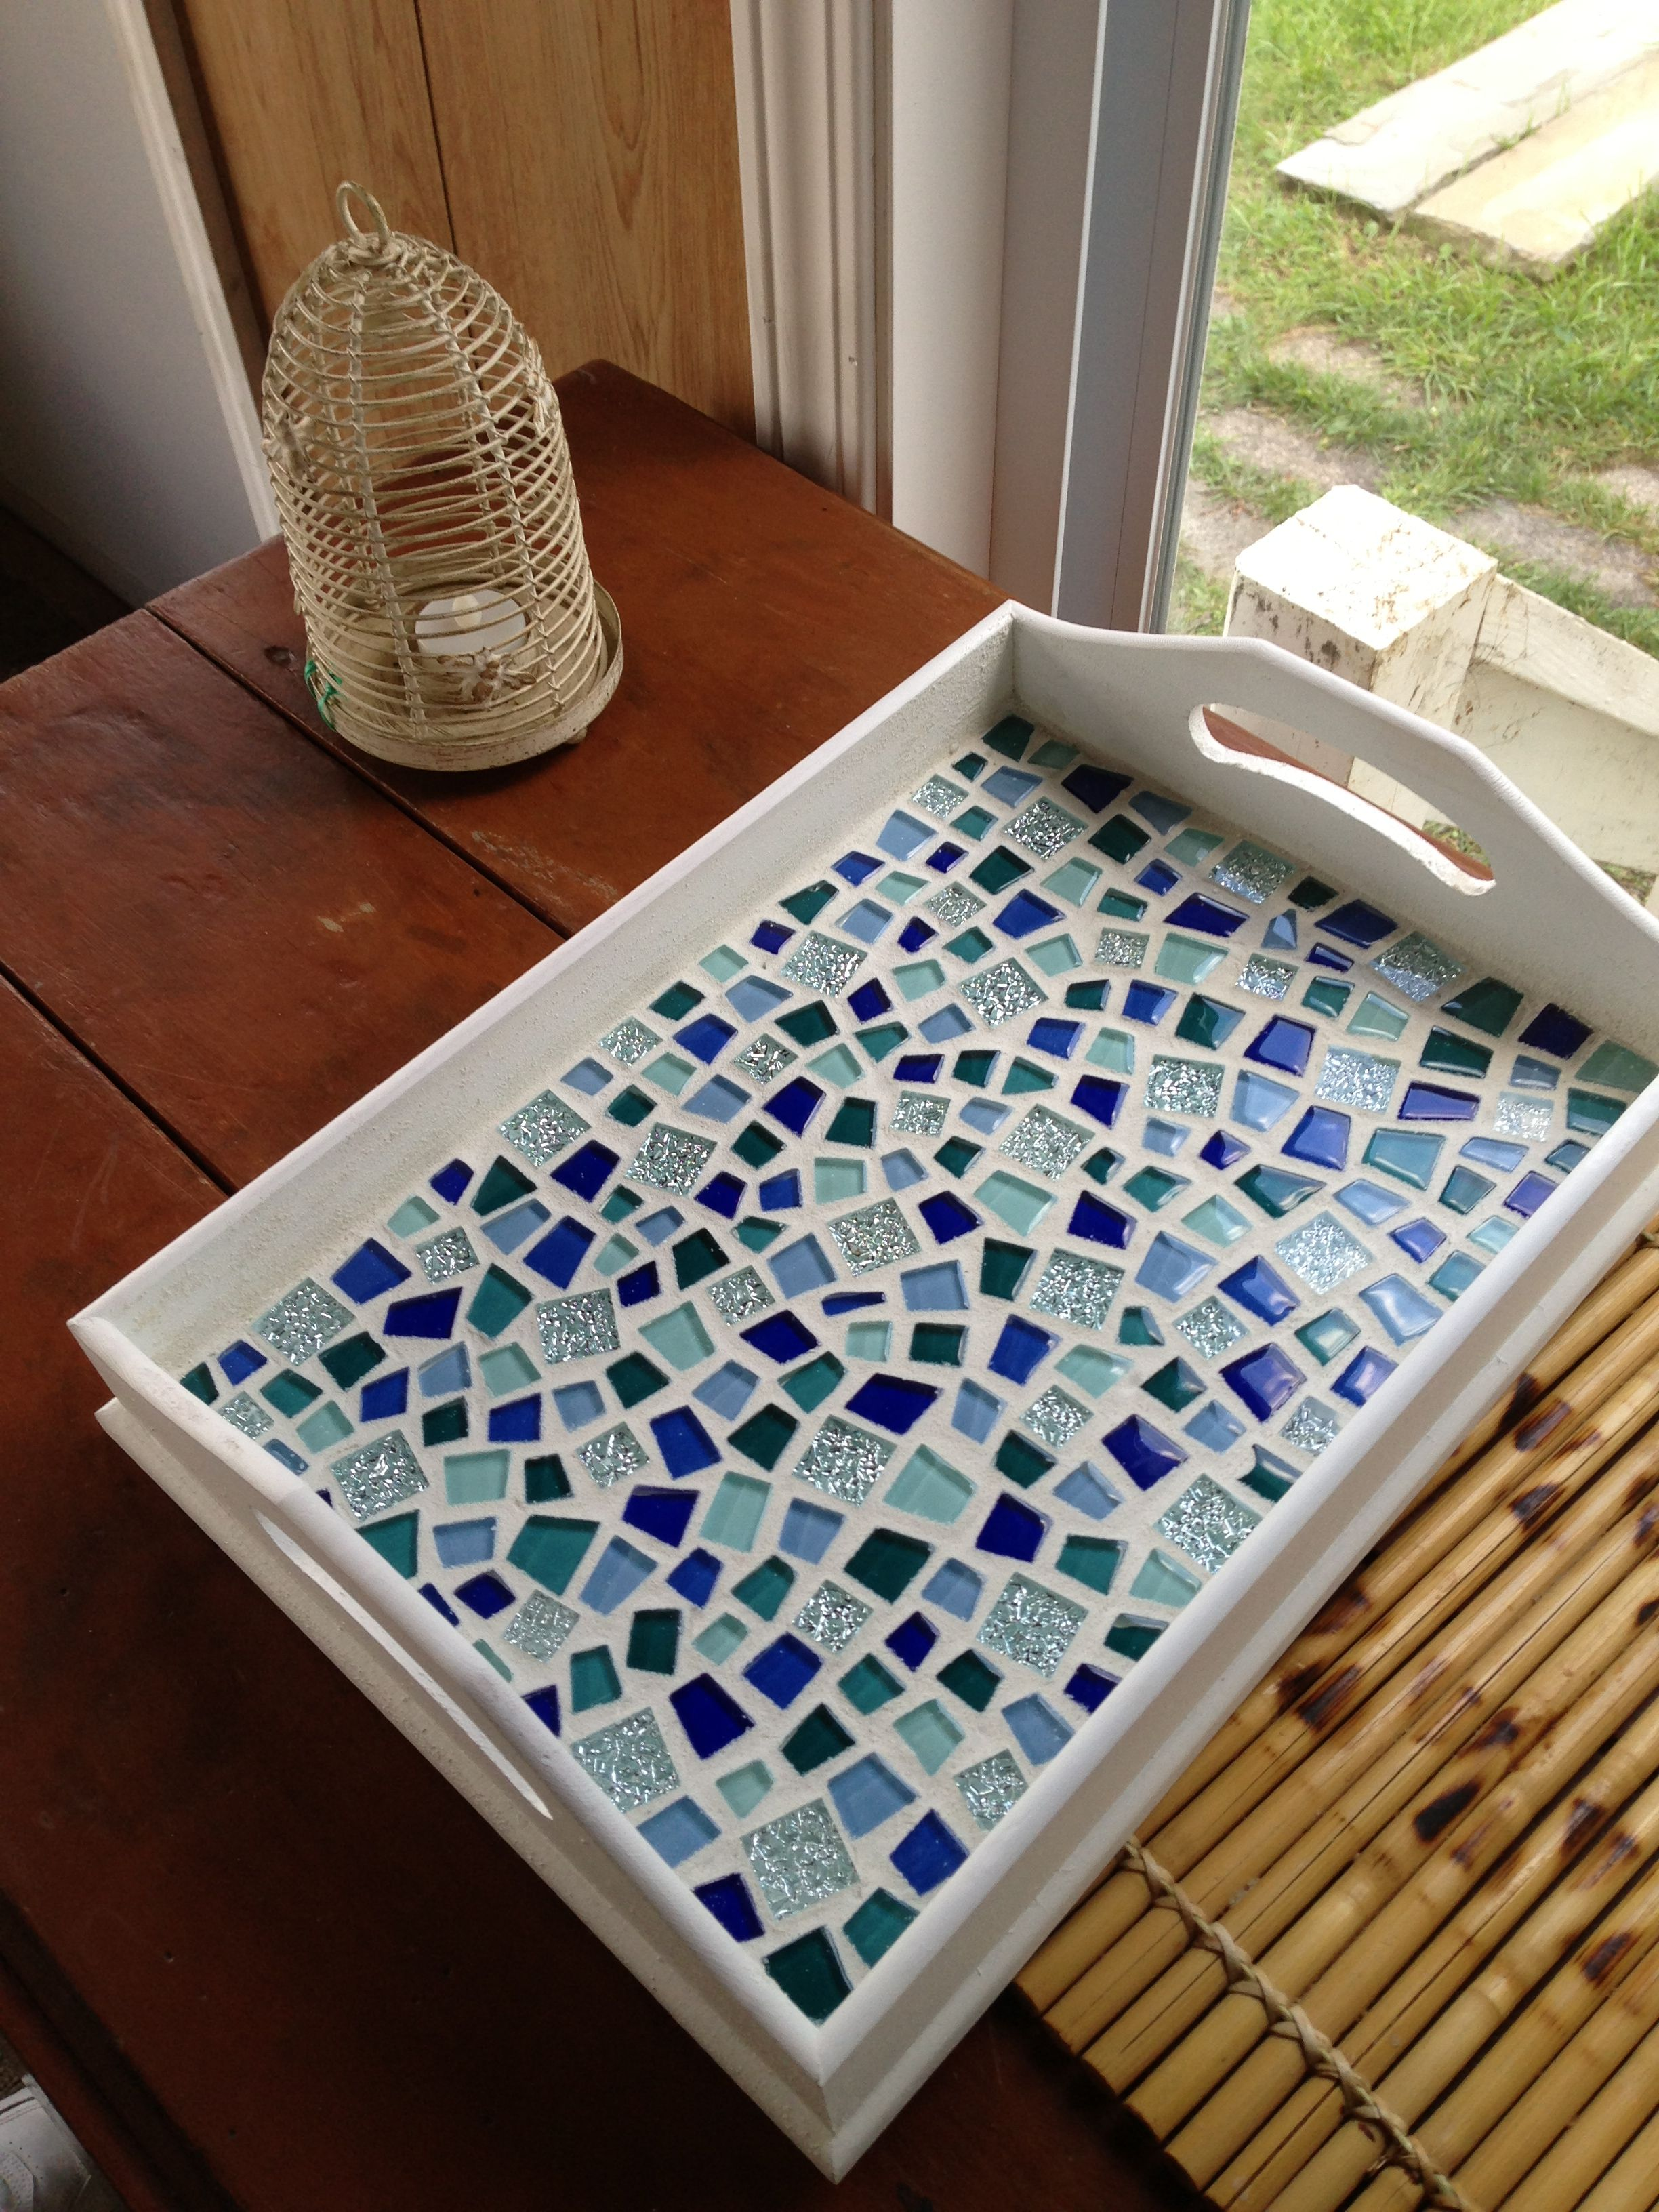 My Successful Pinterest Craft Mosaic Tray I Made Plateau En